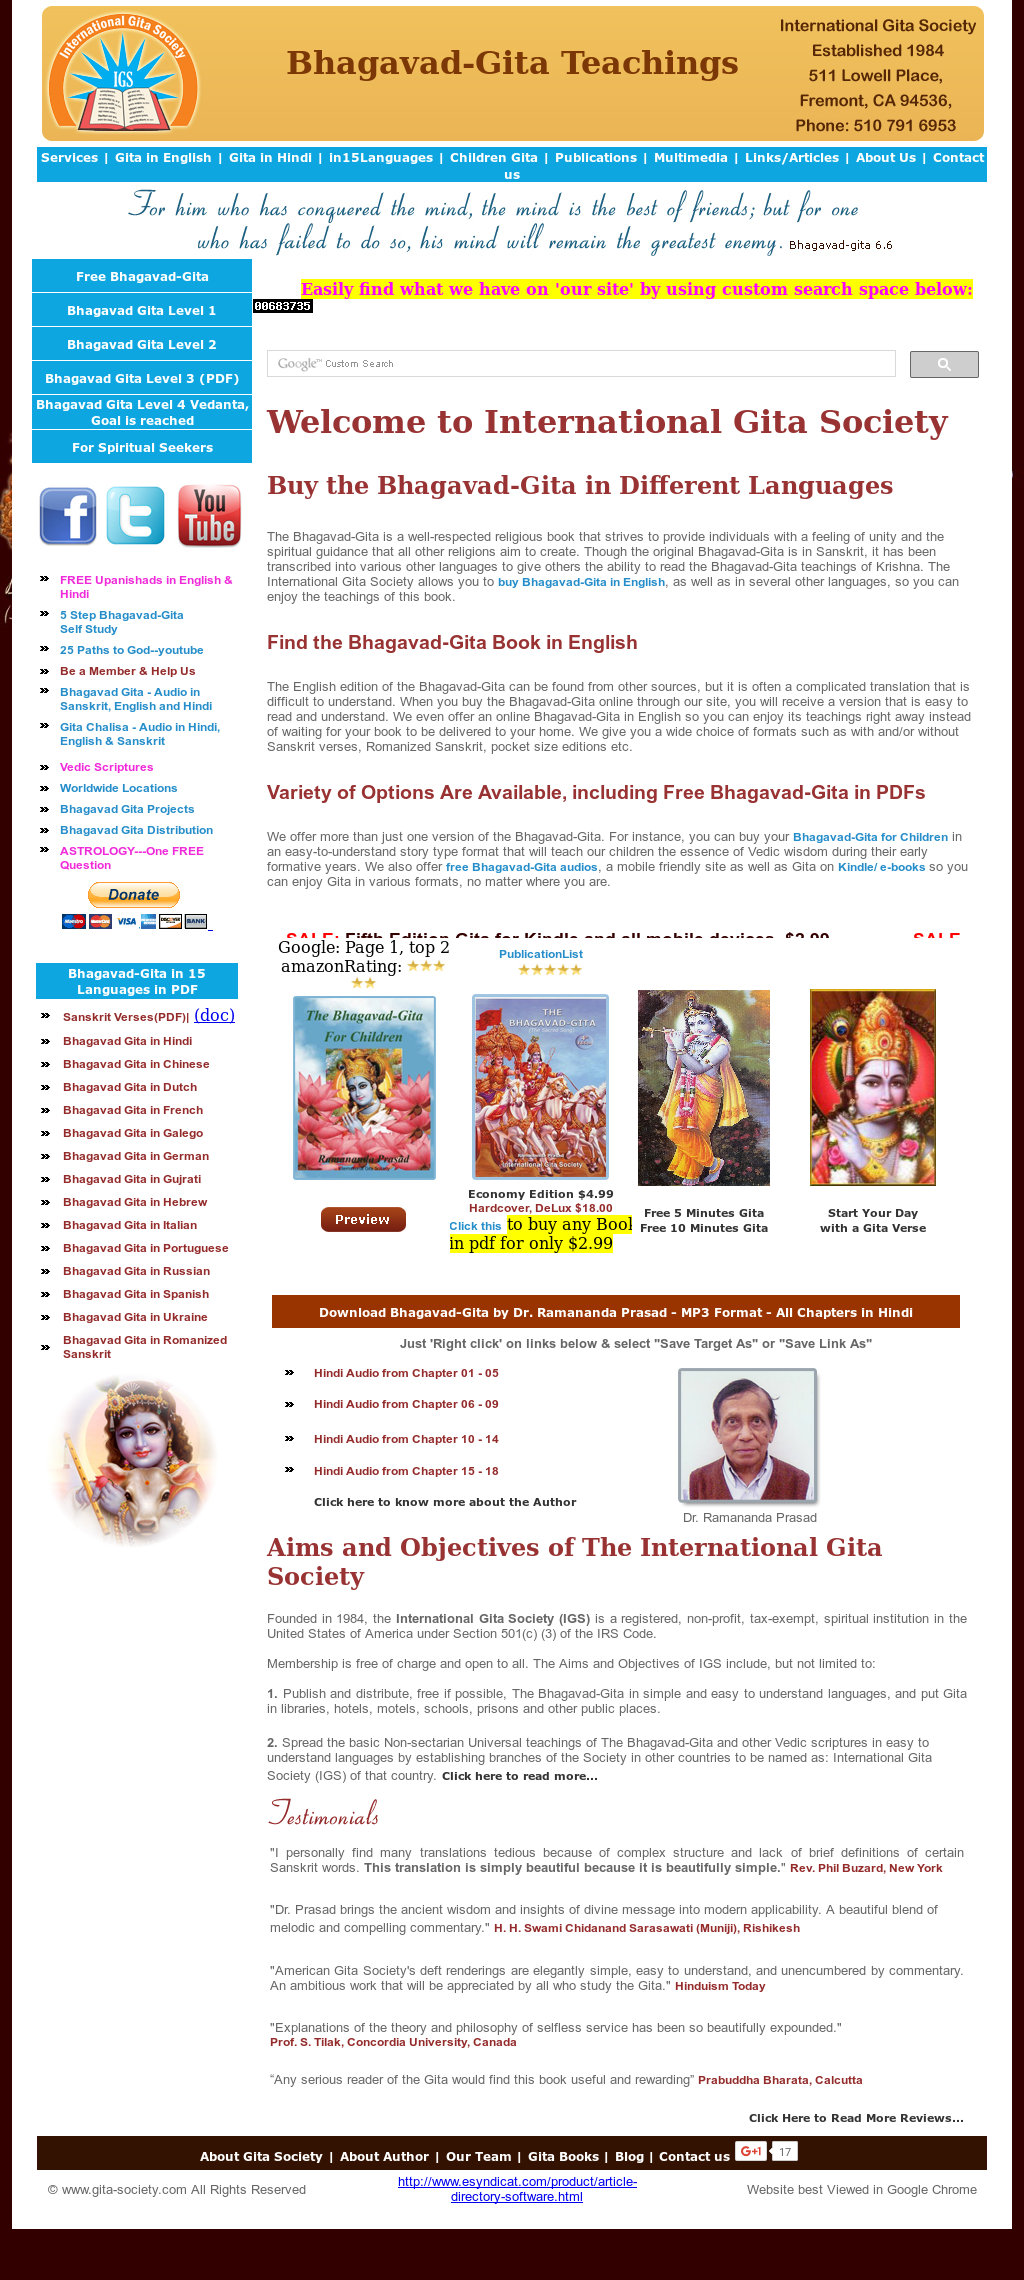 International Gita Soceity Competitors, Revenue and Employees